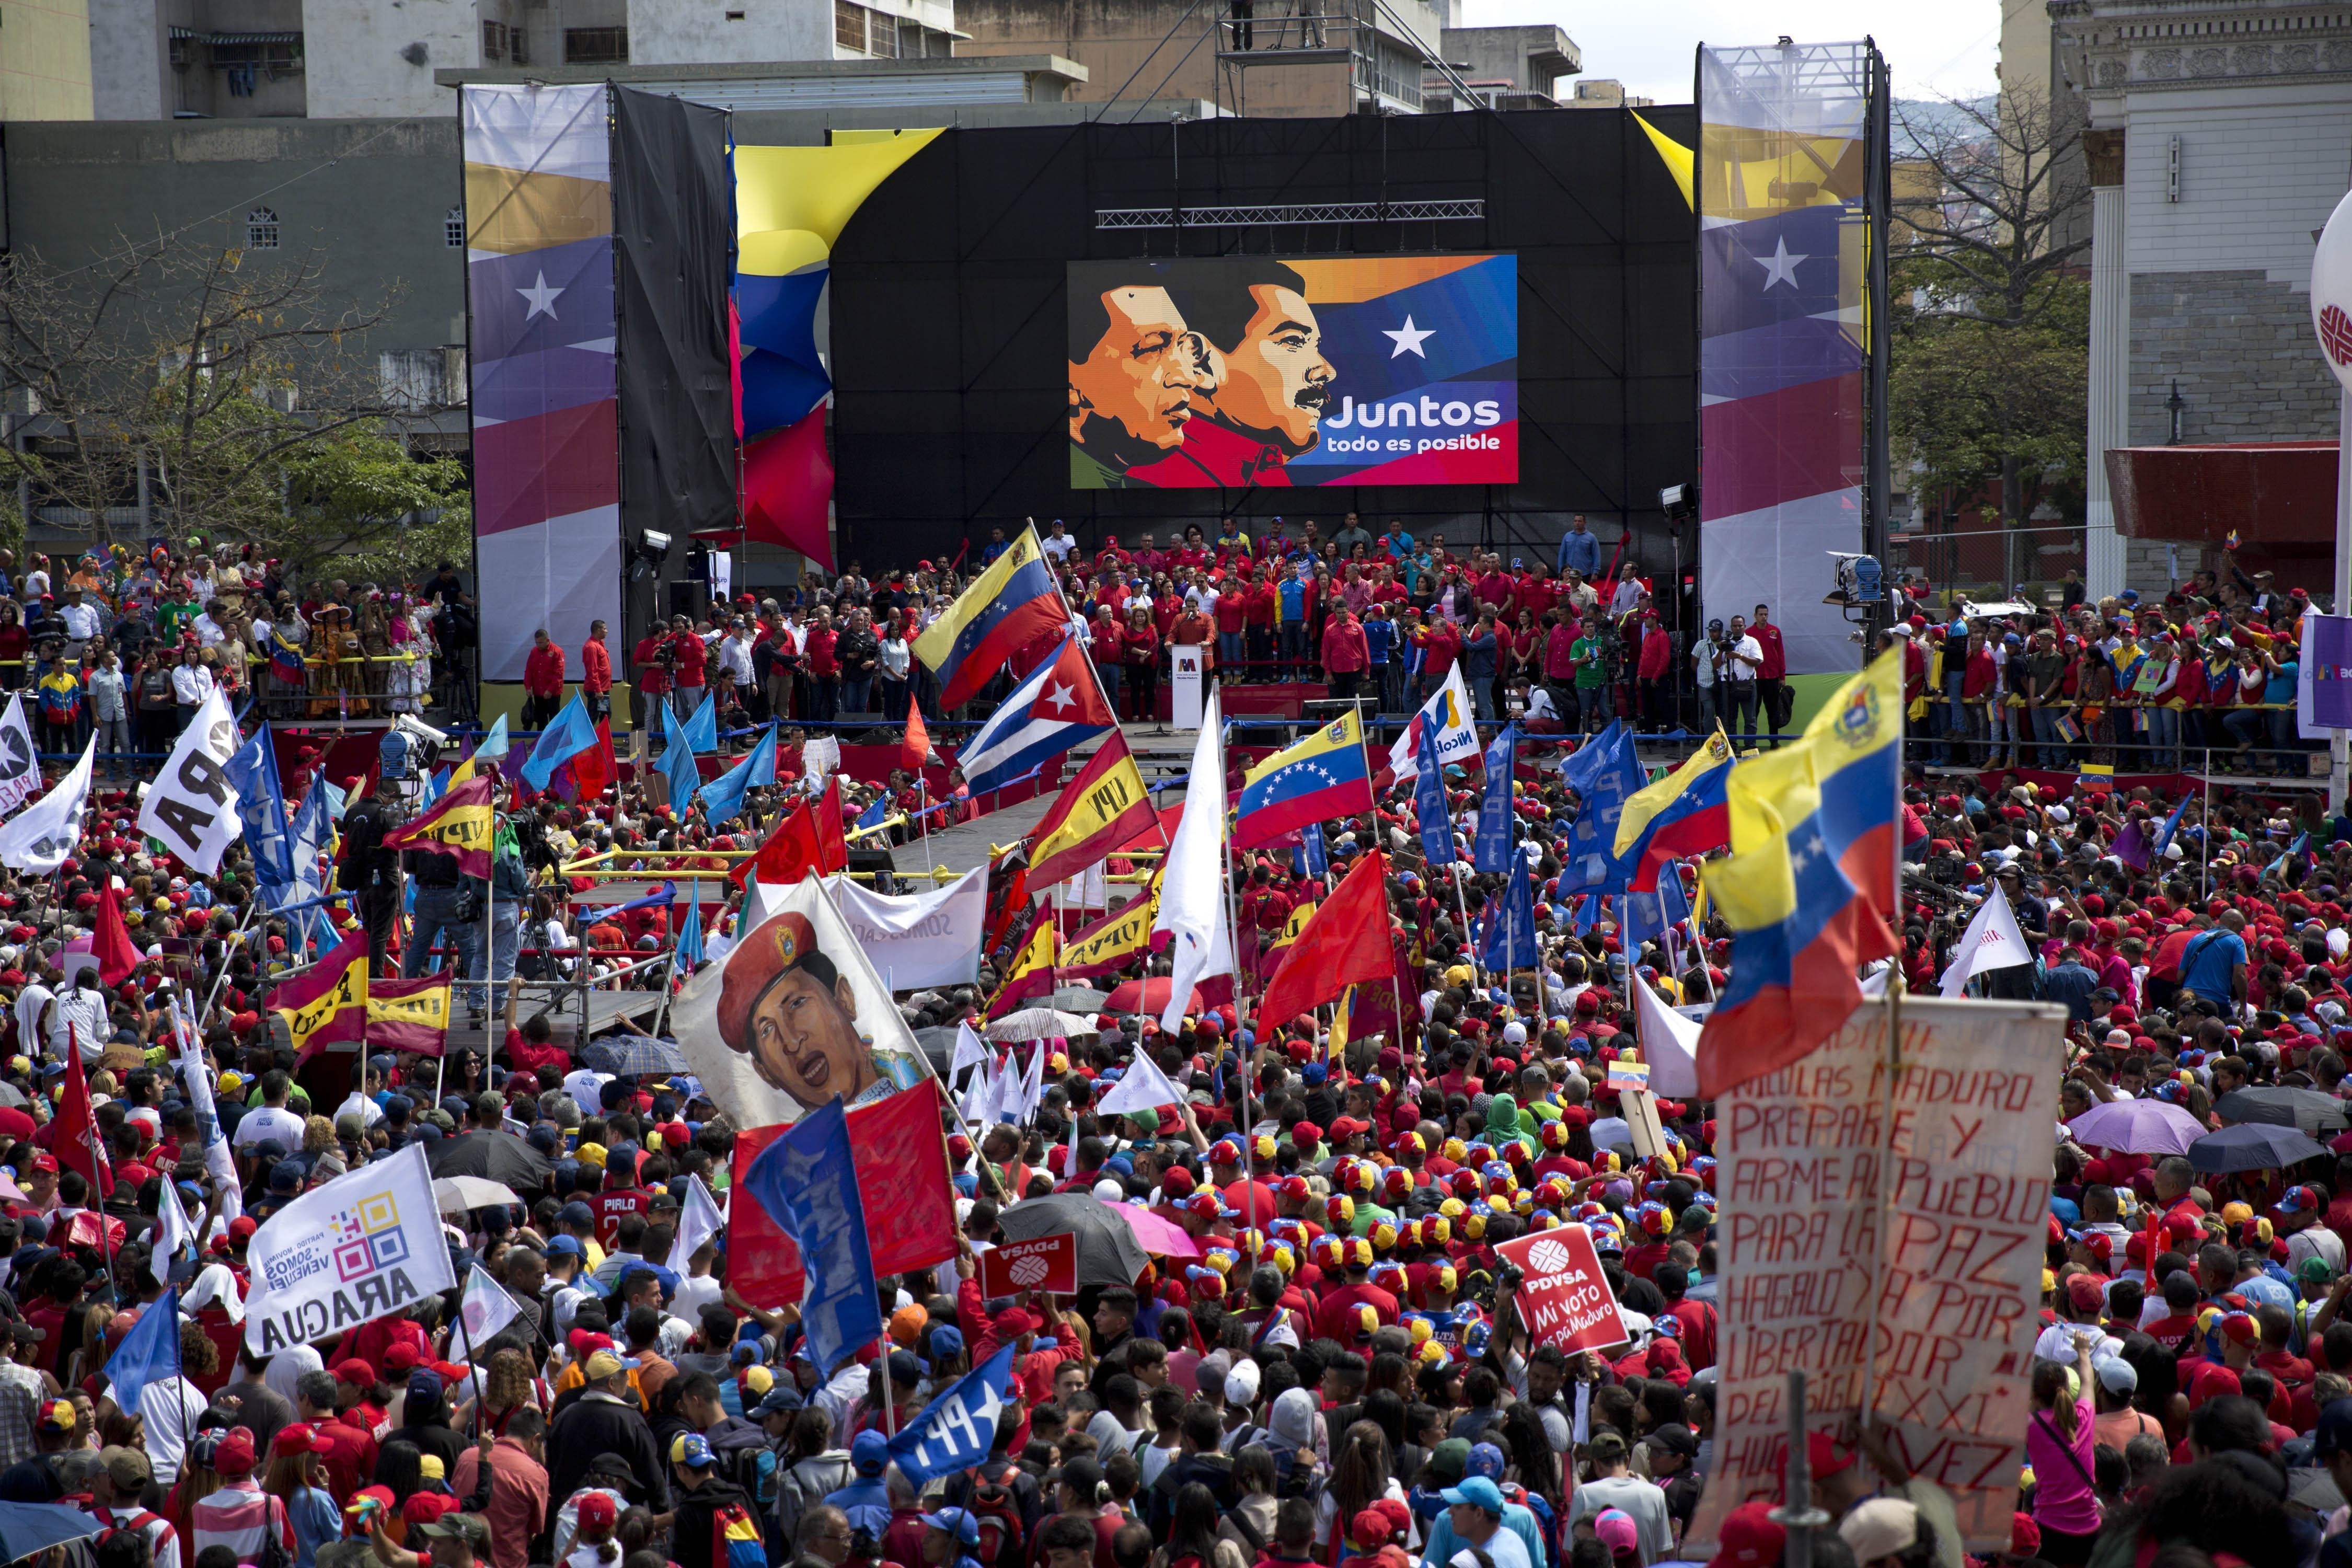 Supporters gather at Diego Ibarra Square to listen Venezuela's President Nicolas Maduro speak after a ceremony formalizing his candidacy for the upcoming presidential election, in Caracas, Venezuela, Feb. 27, 2018.